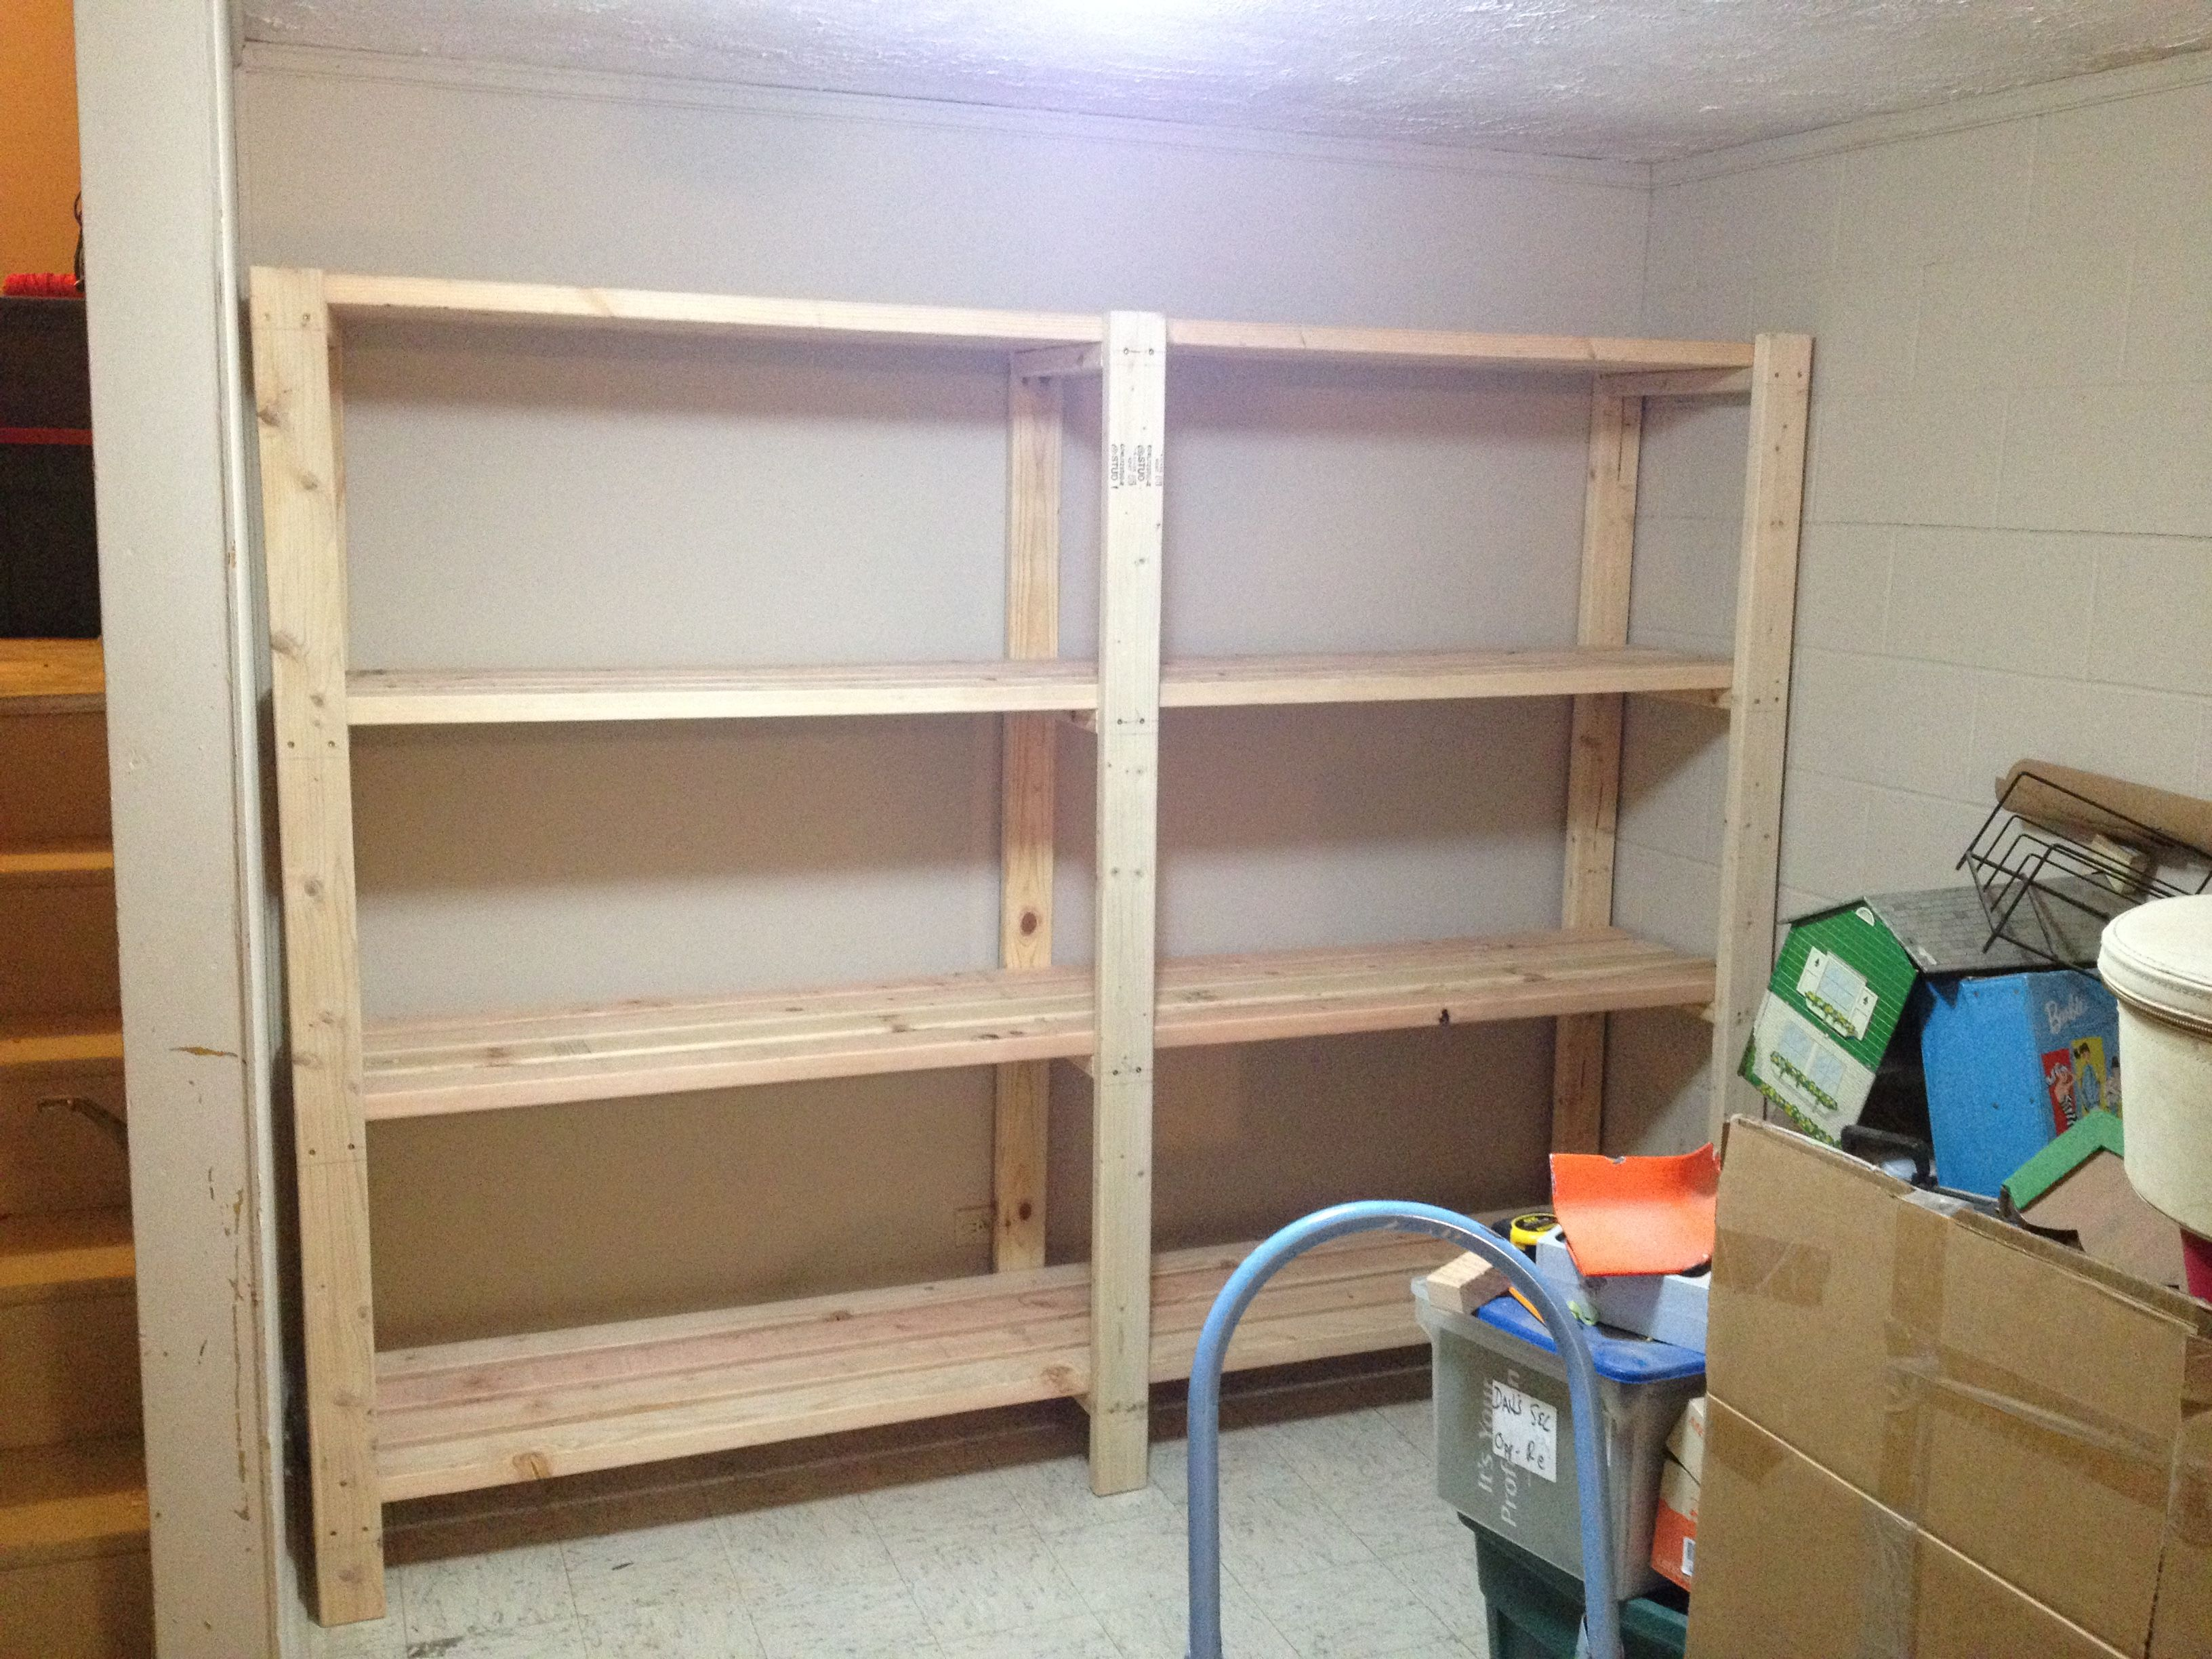 2 X 4 Garage Shelves Built Into Basement Storage Do It